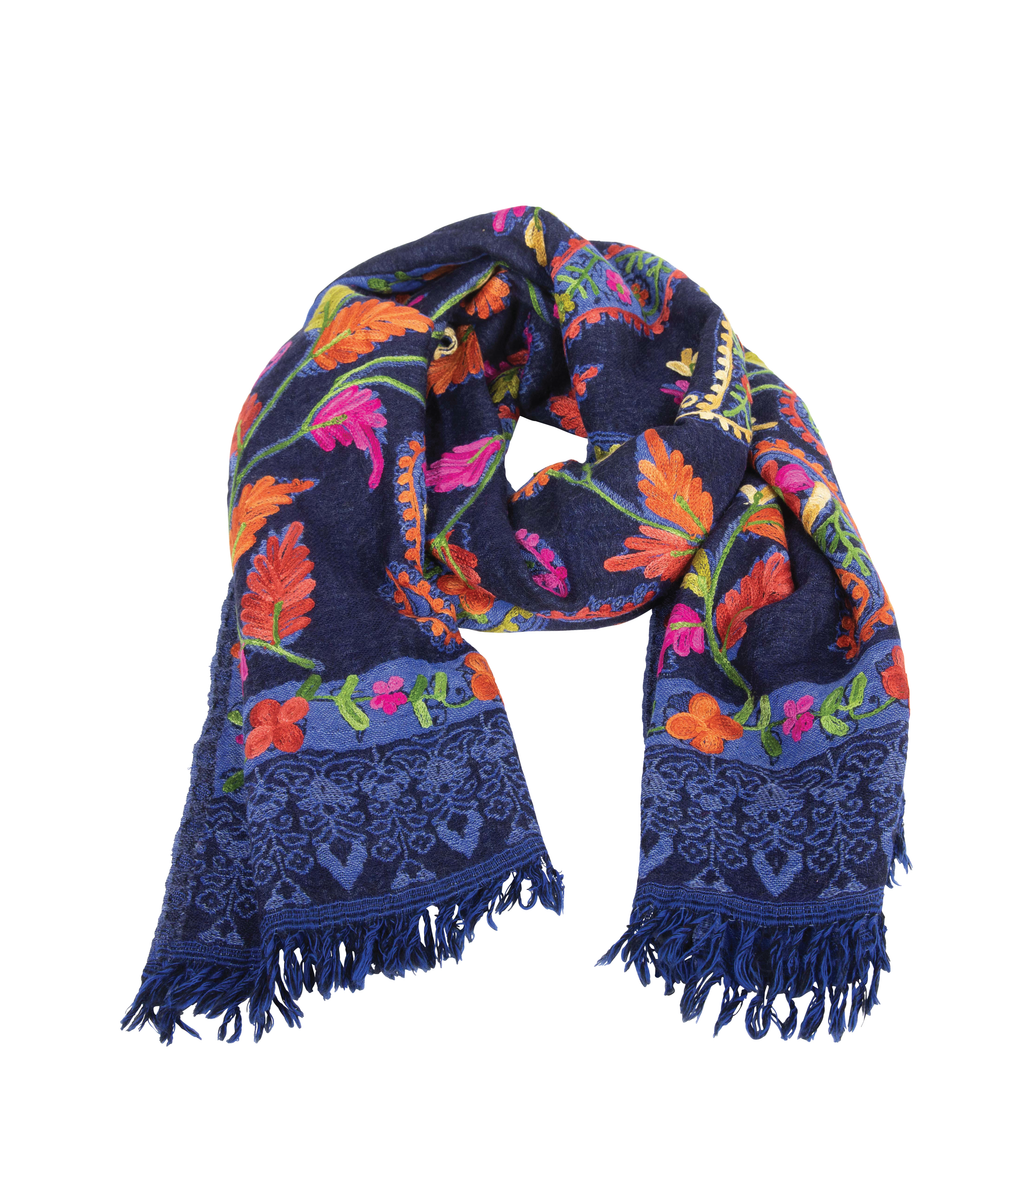 WOOL Scarf - Indigo Sunset